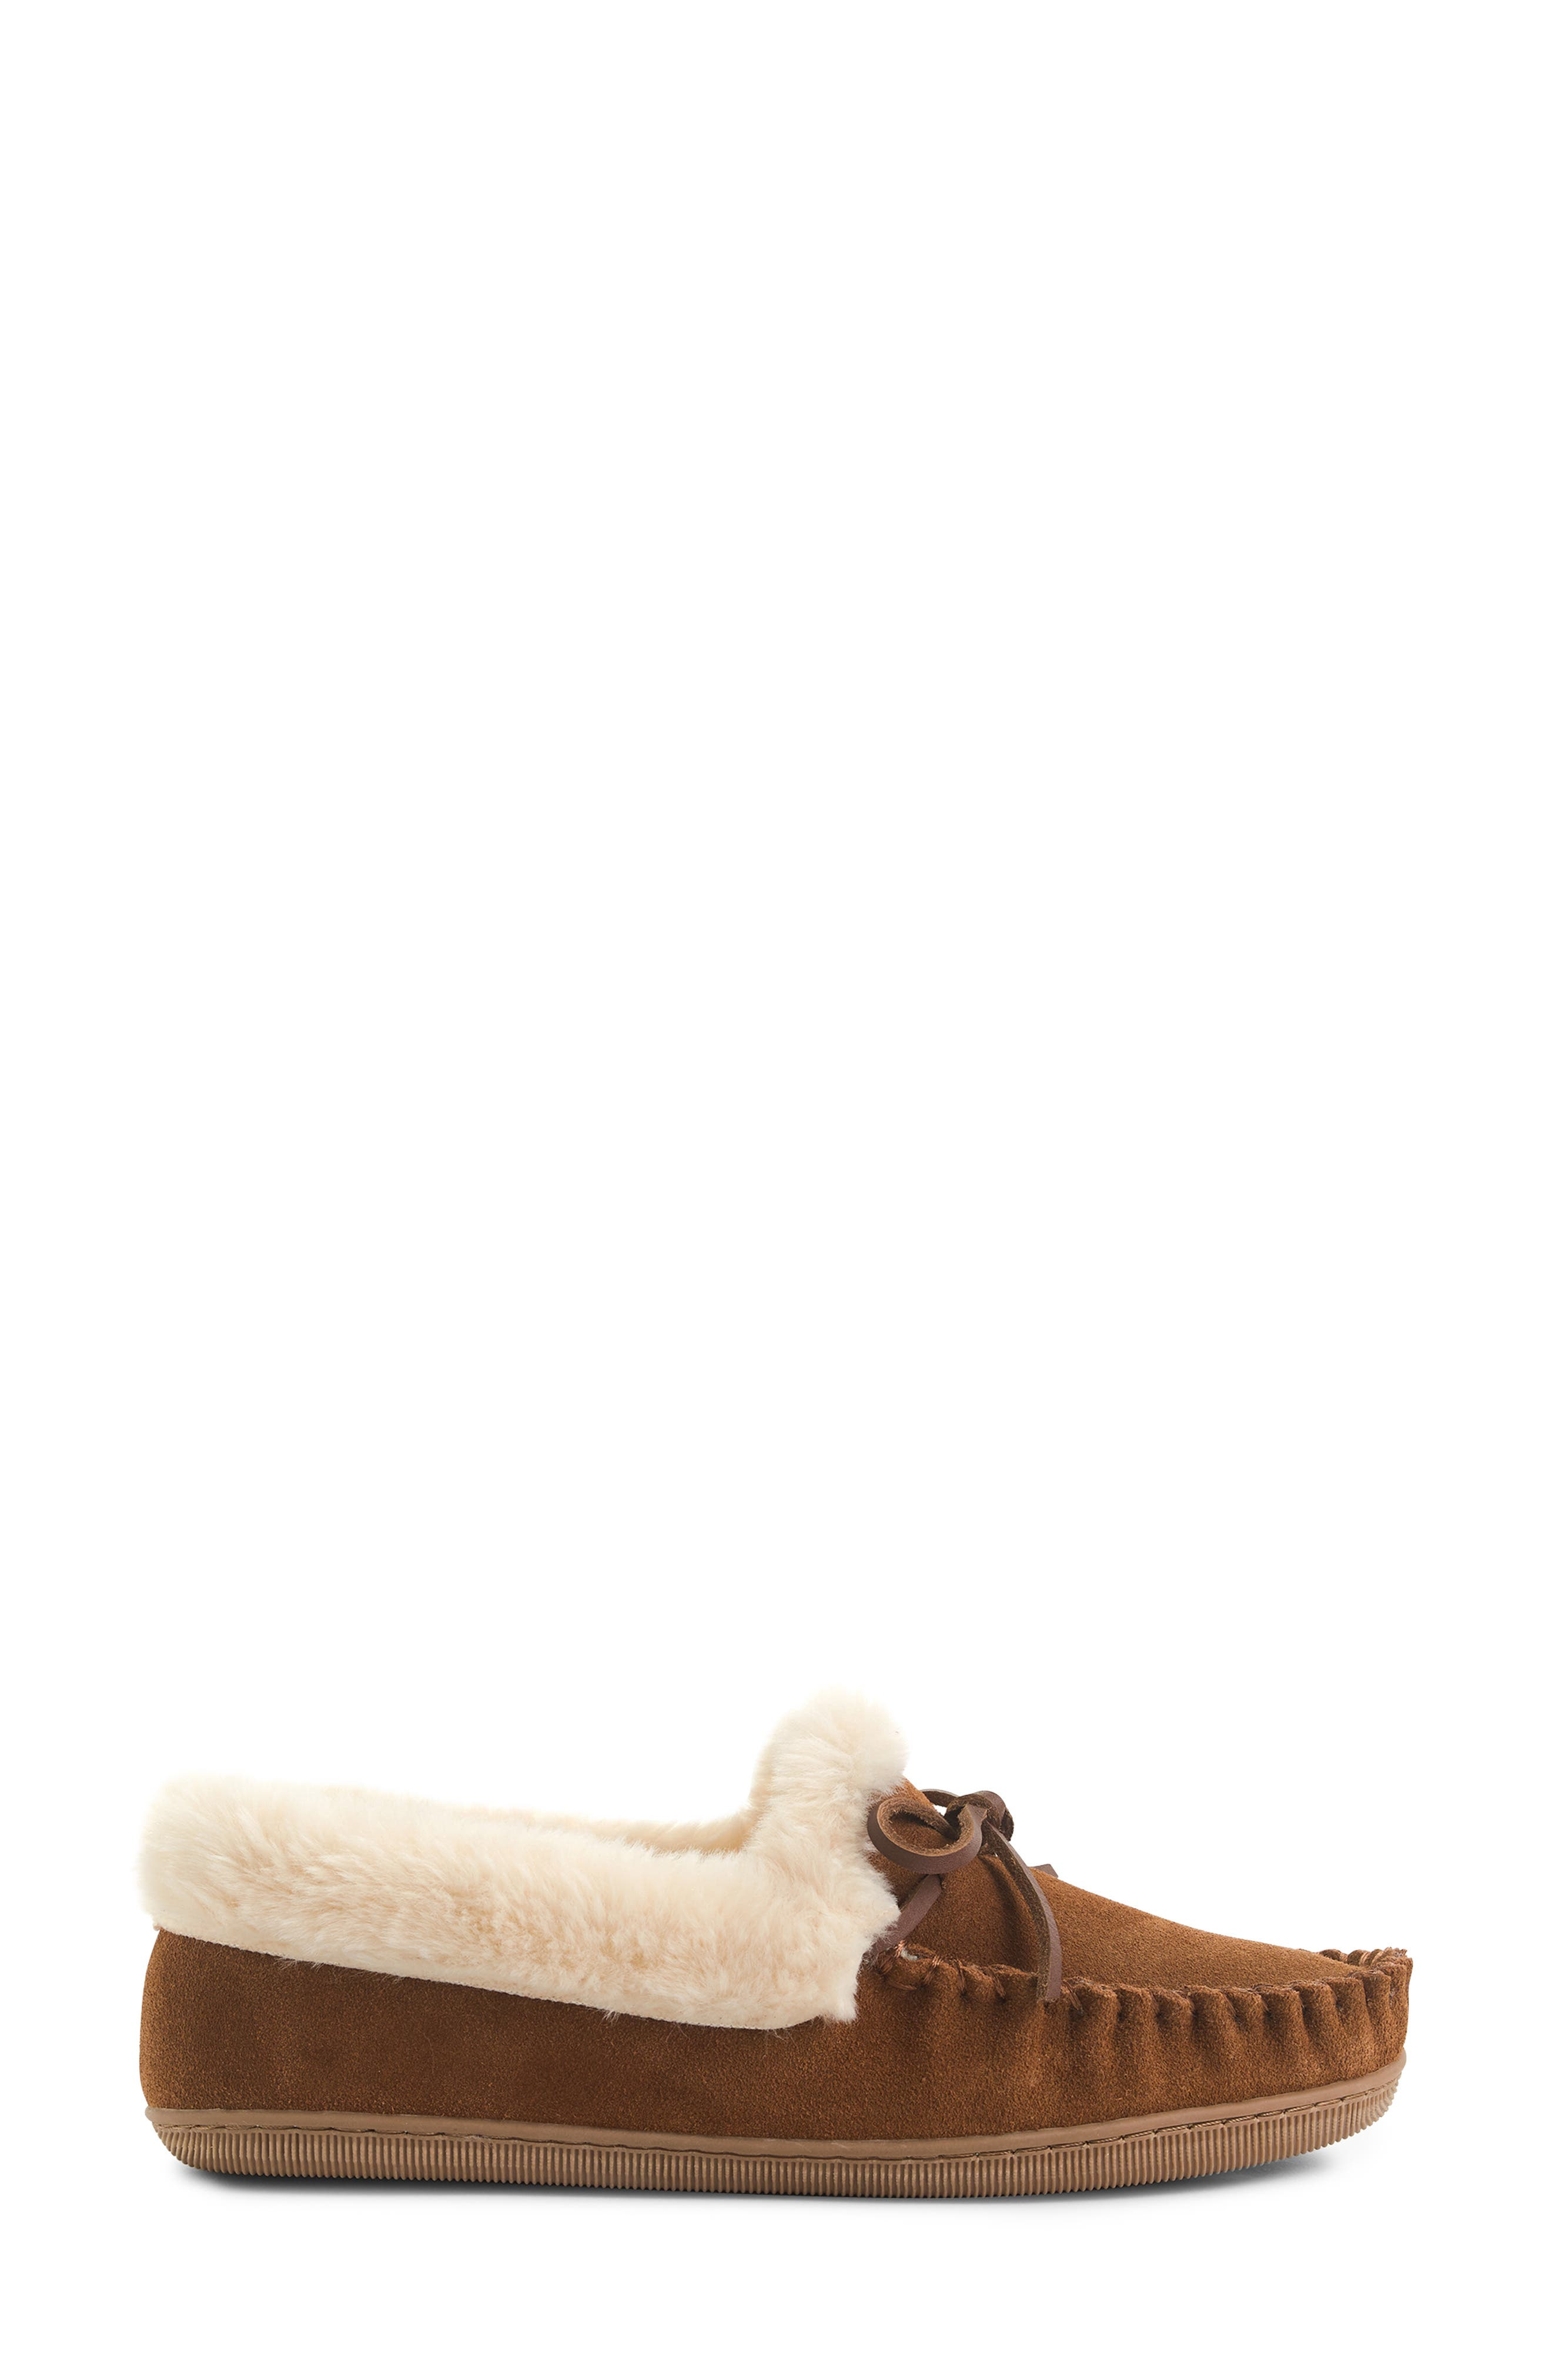 J.CREW Lodge Faux Shearling Moccasin, Main, color, DARK NUTMEG LEATHER